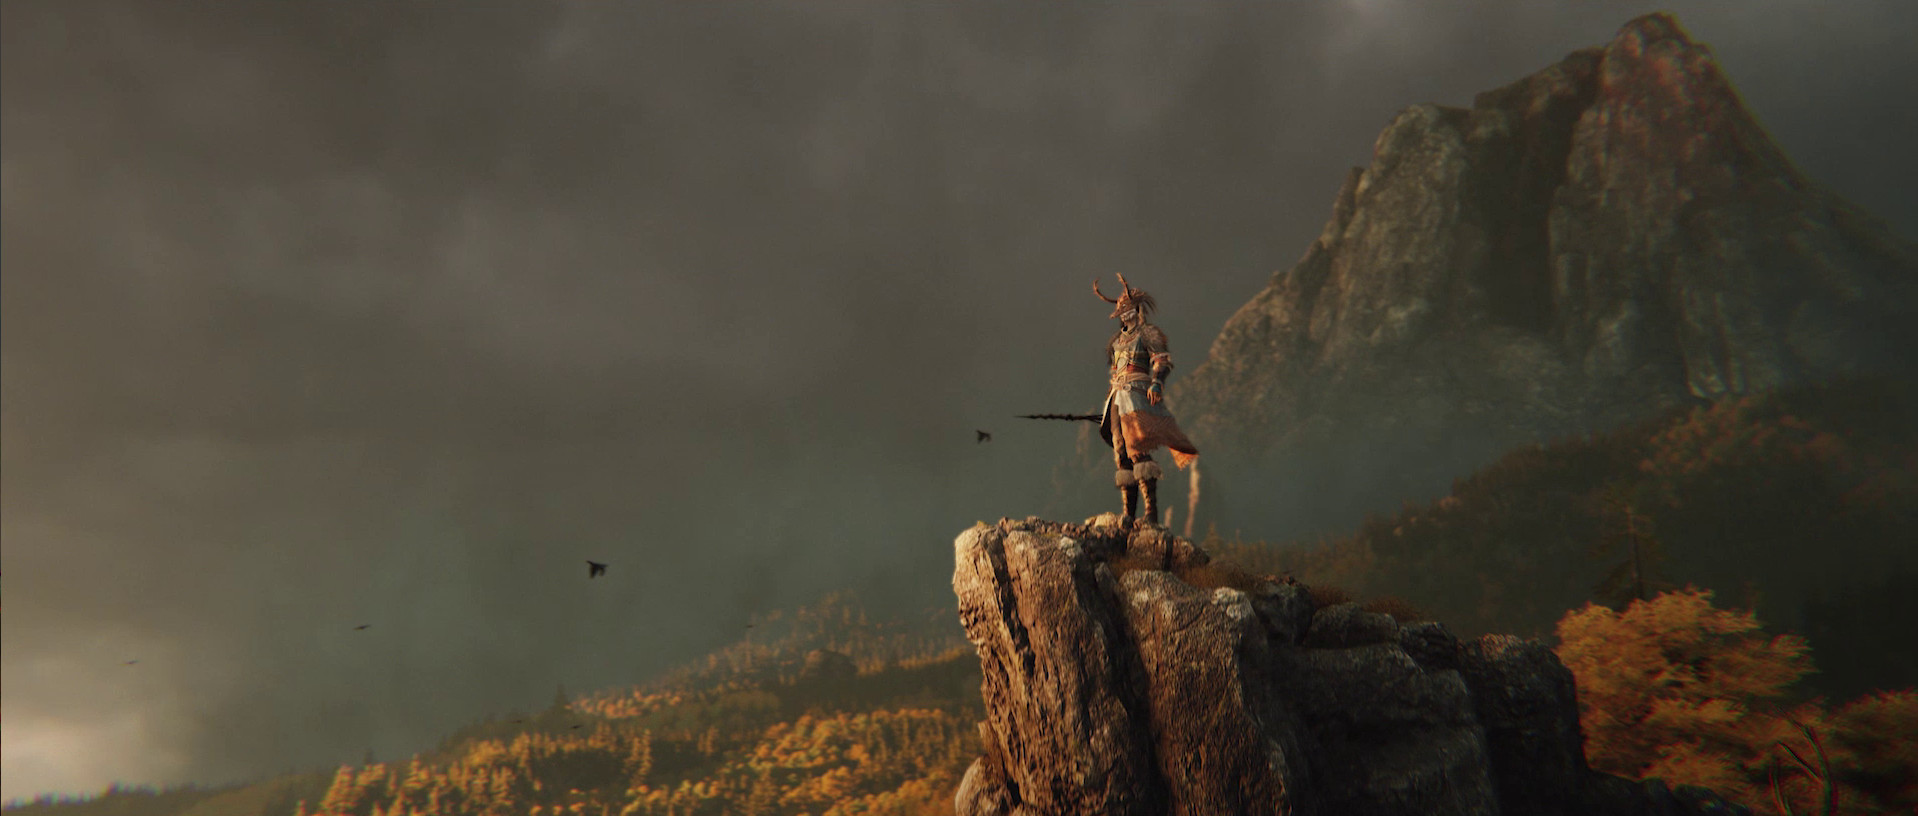 greed-fall-rpg-by-spiders-9-cliff-view